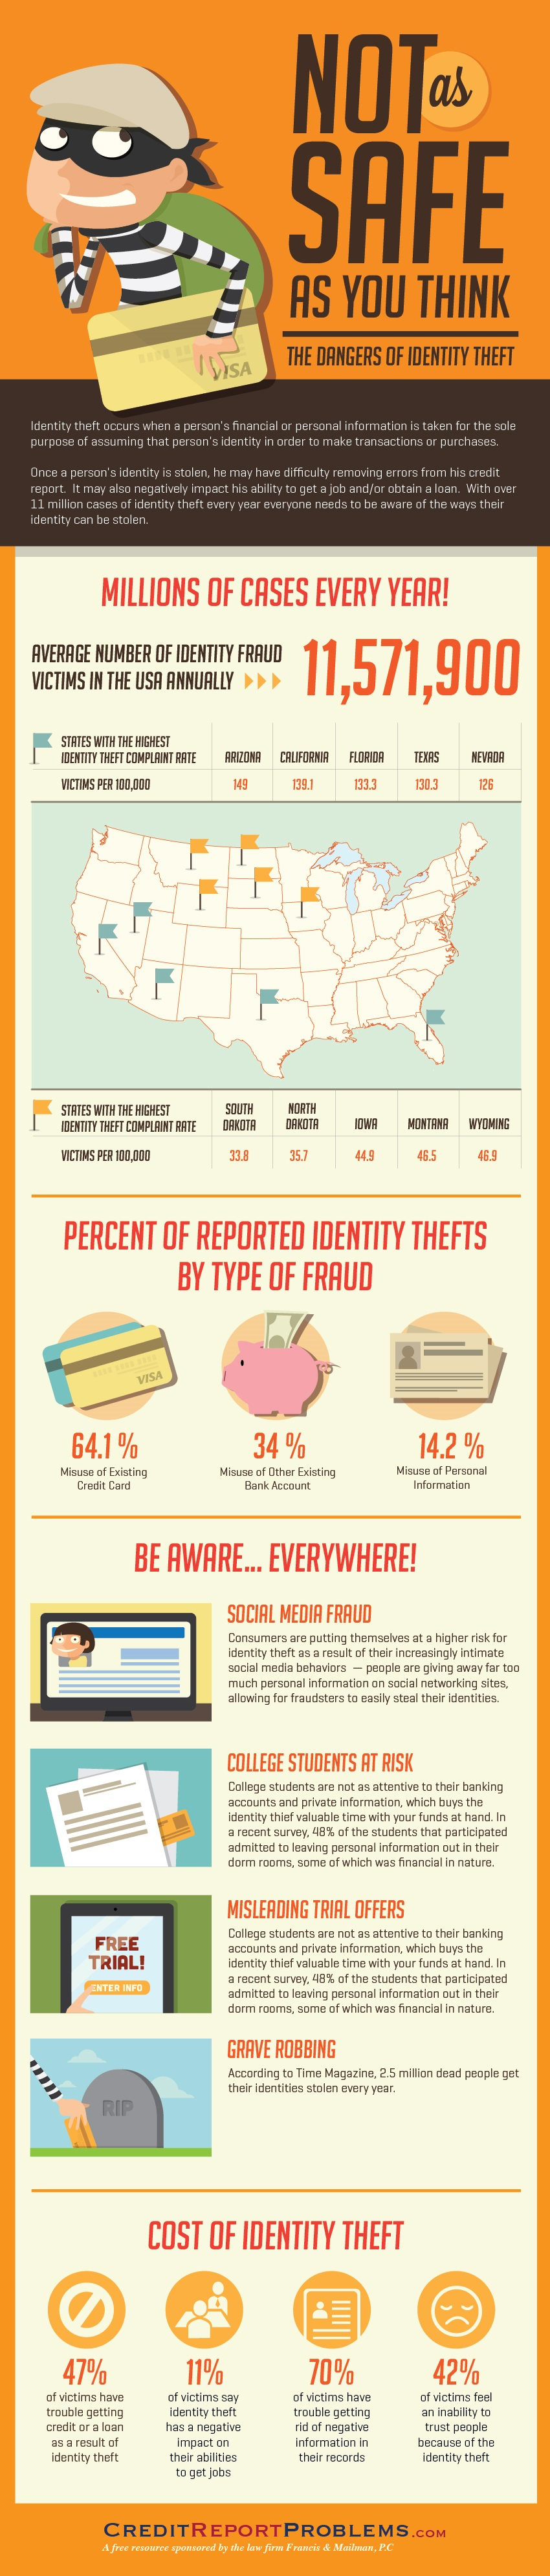 Easy Ways to Prevent ID theft